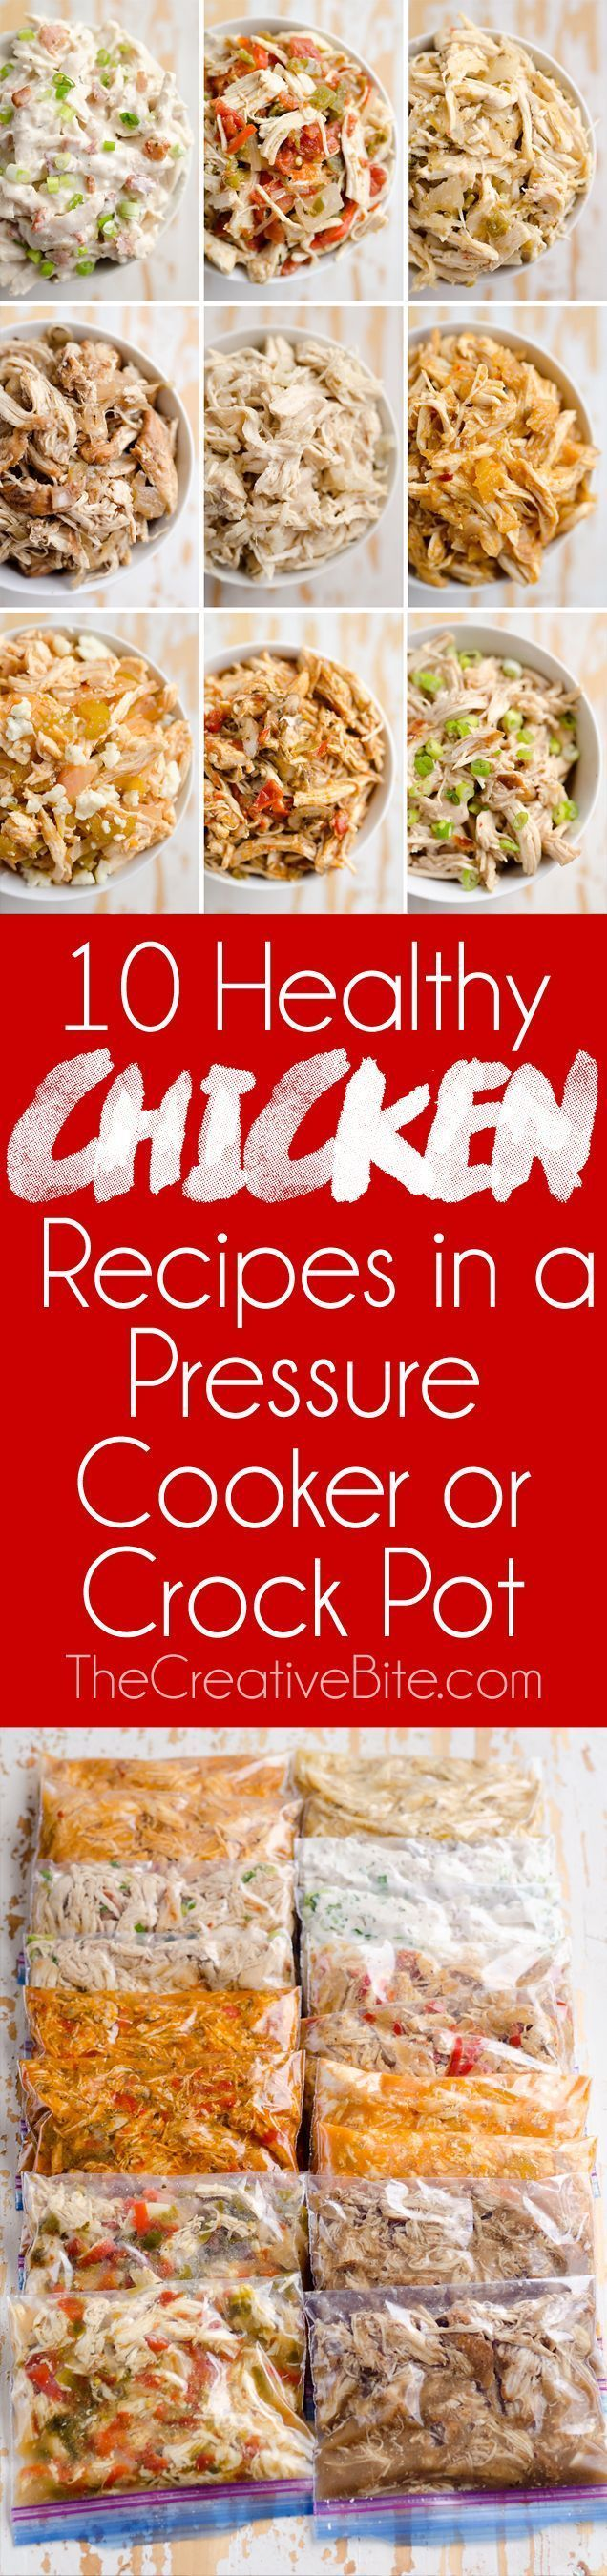 awesome Try these 10 Healthy Chicken Recipes in a Pressure Cooker or Crock Pot for juicy...by http://dezdemooncooking.gdn